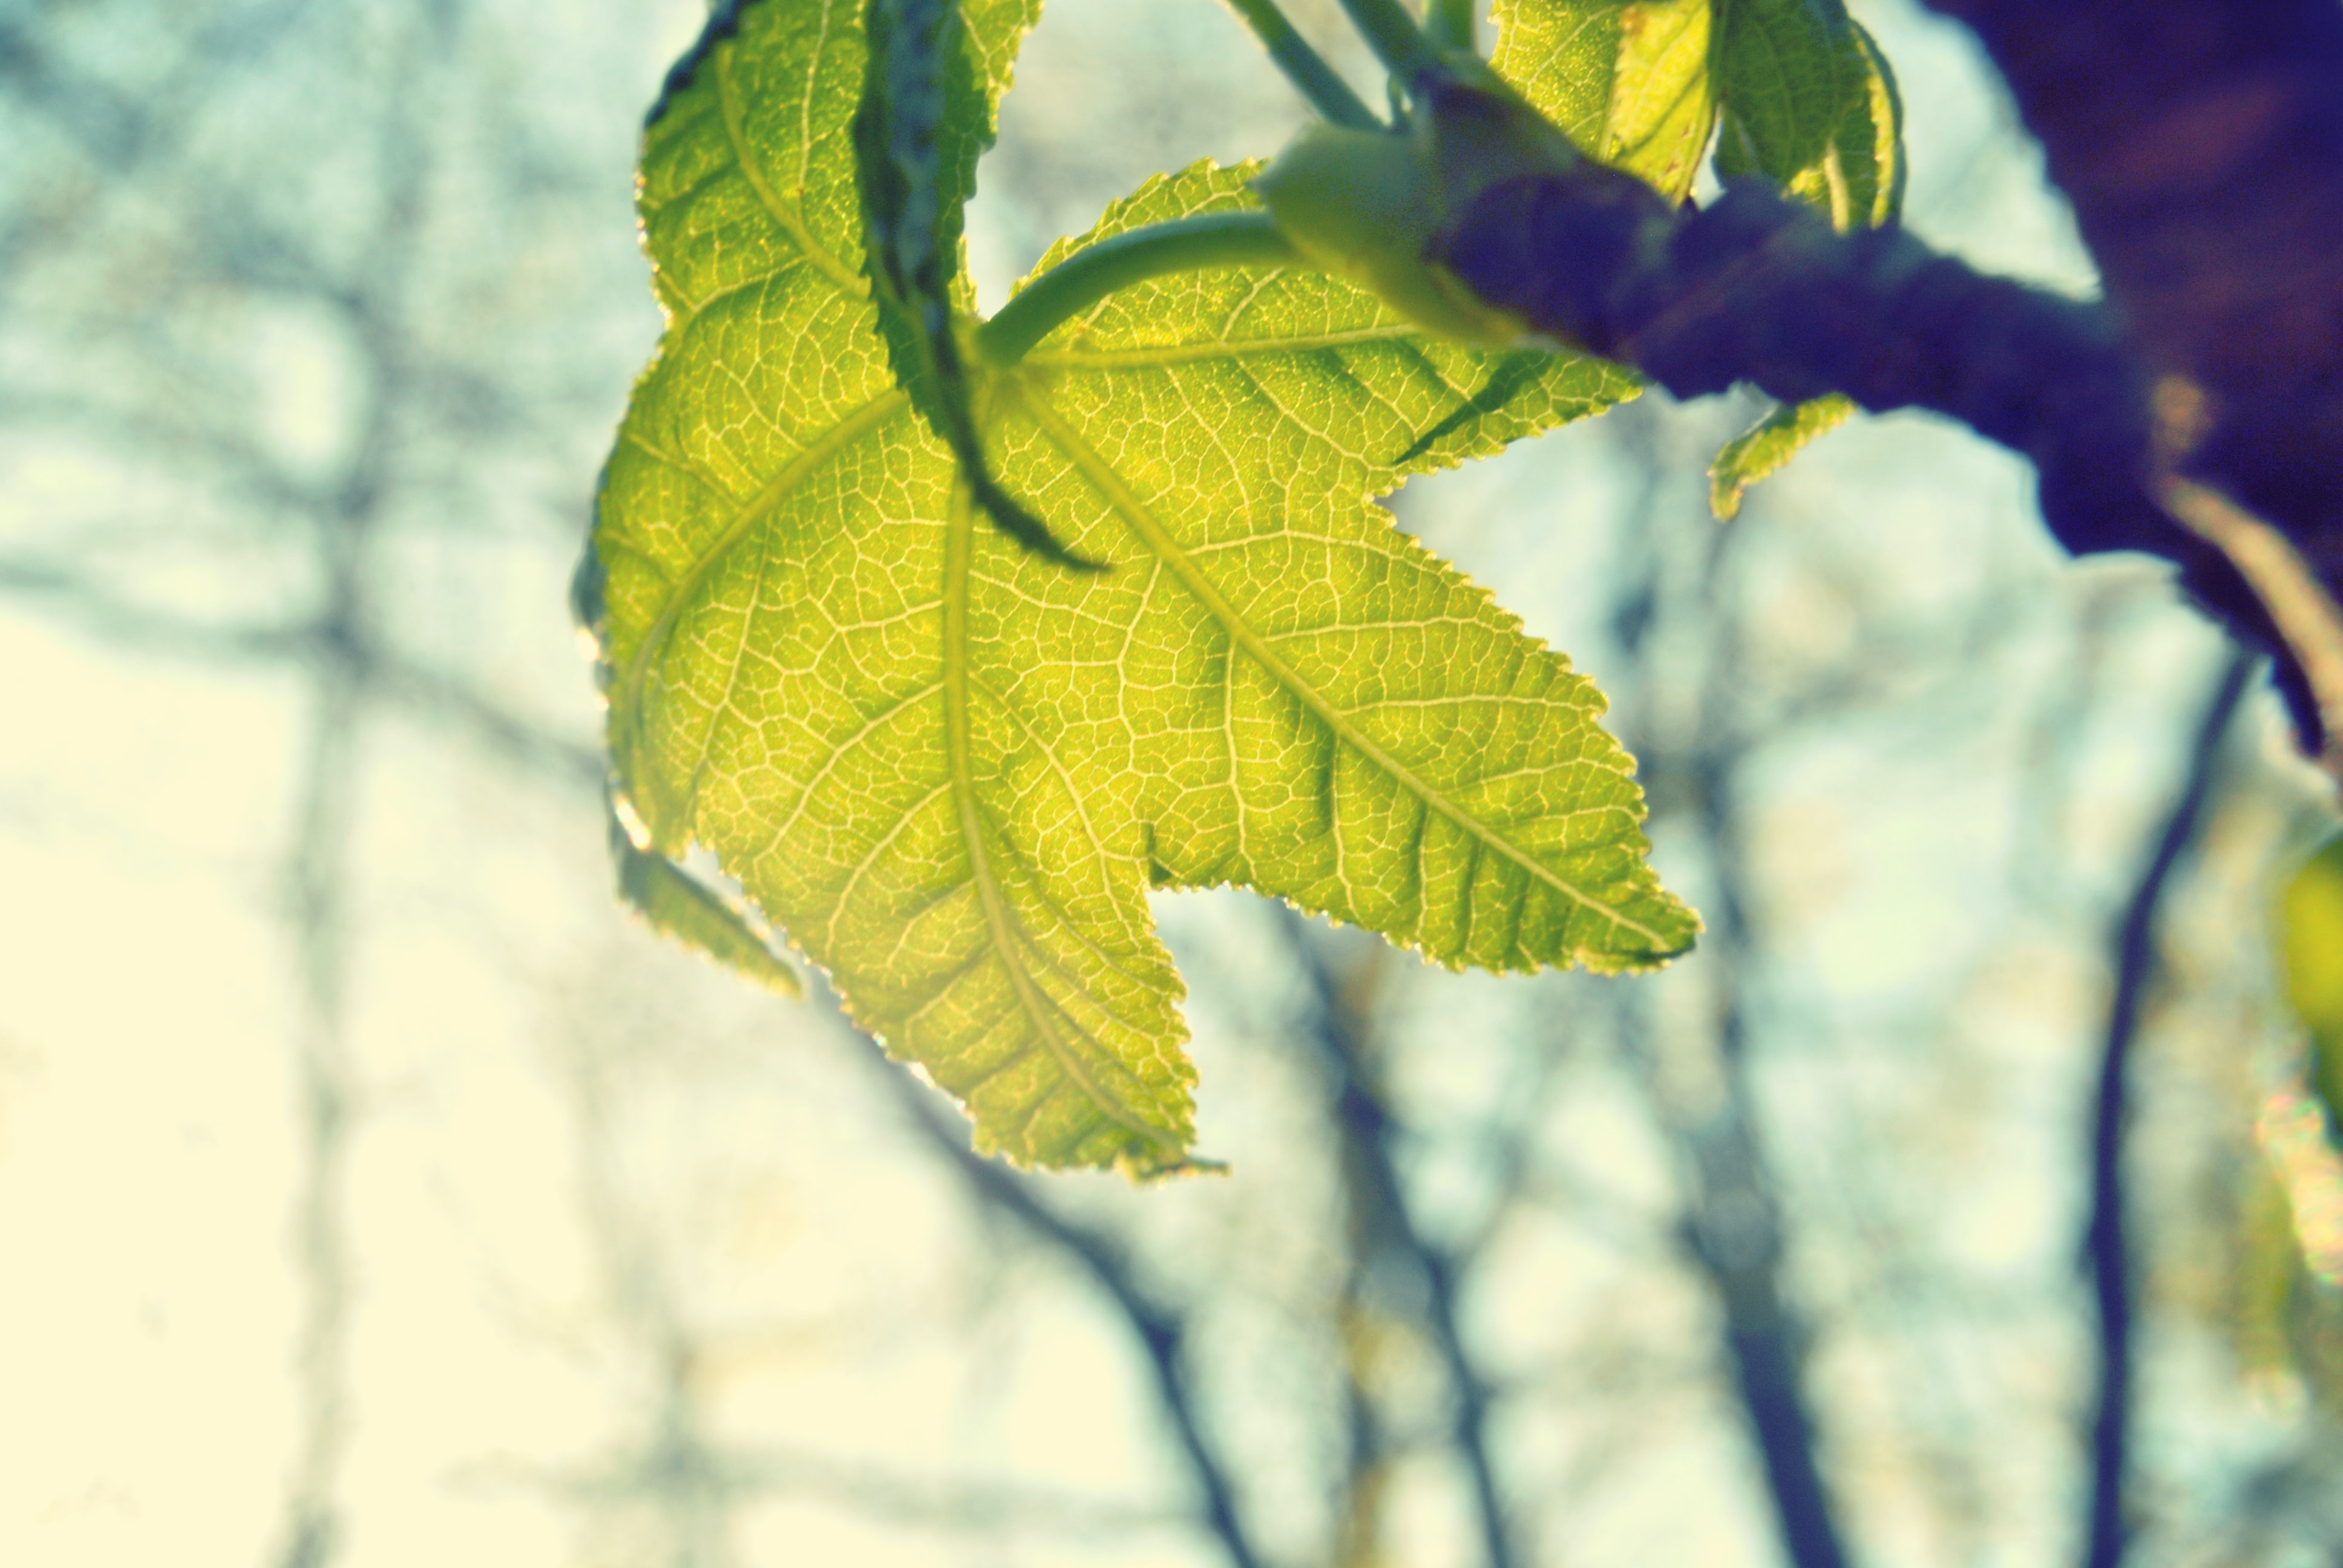 Sun shining through a light green maple leaf hanging down from a branch